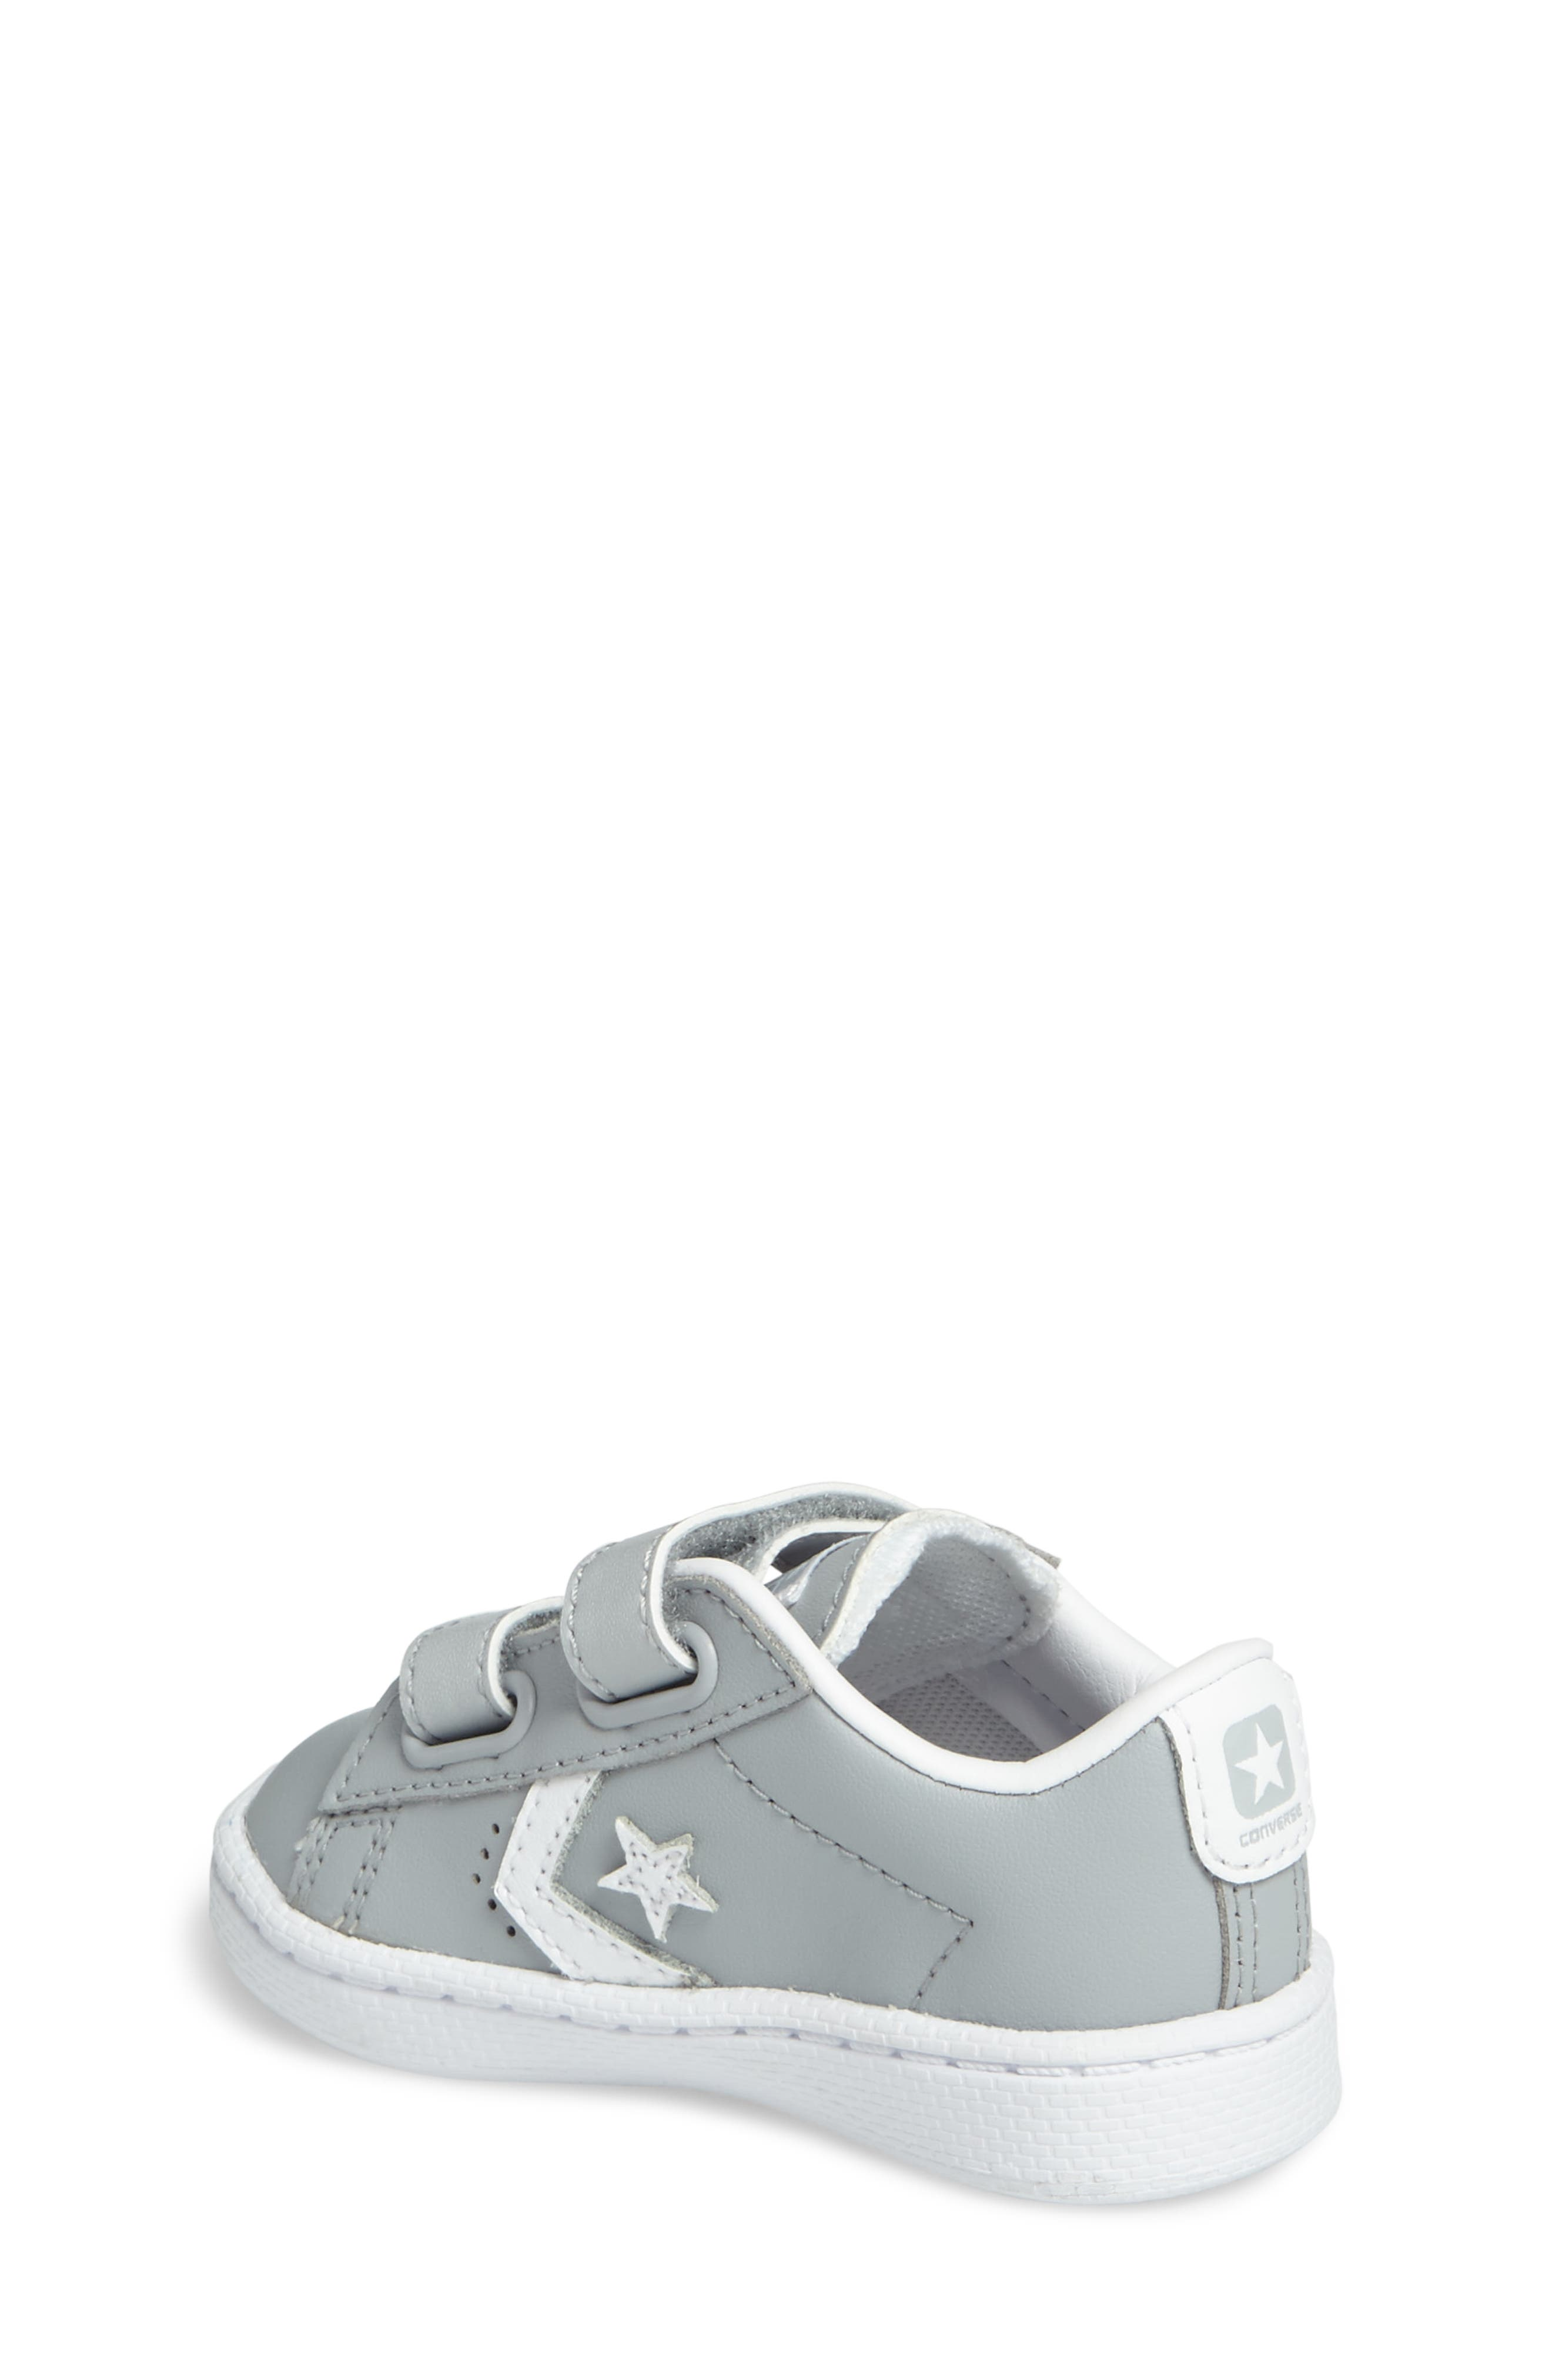 Alternate Image 2  - Converse Pro Leather Low Top Sneaker (Baby, Walker, & Toddler)